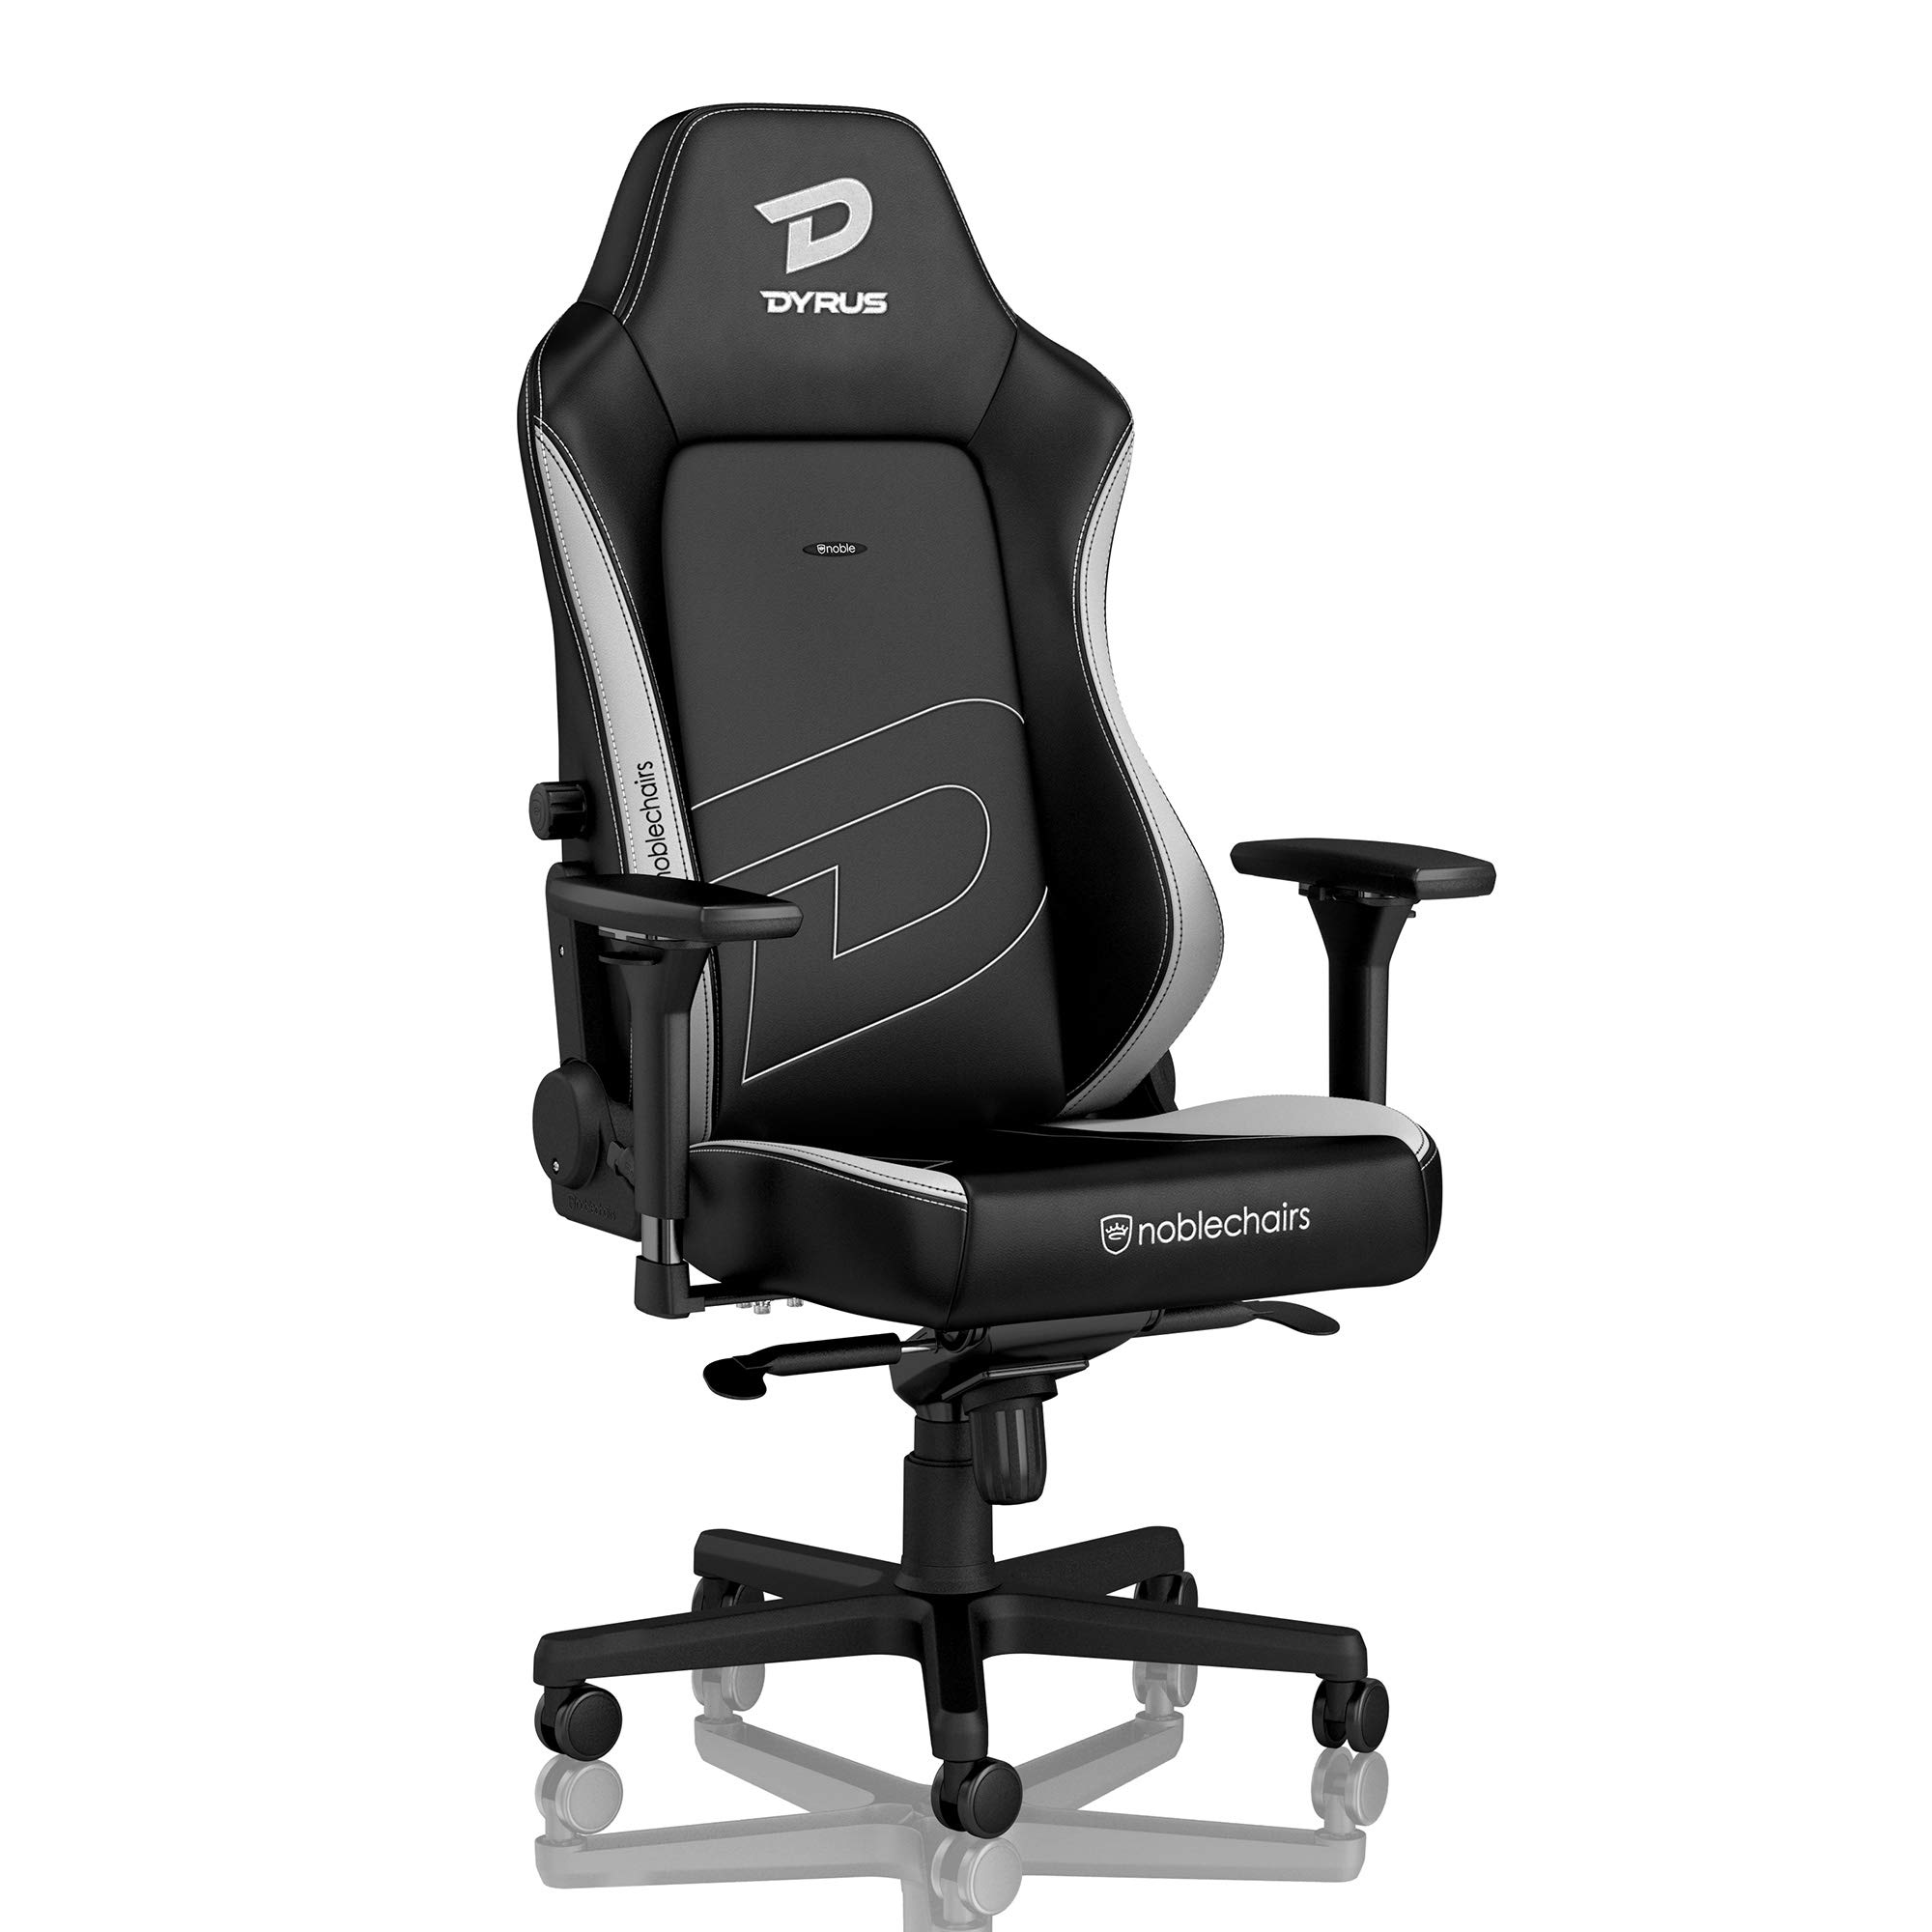 noblechairs Hero Gaming Chair - Office Chair - Desk Chair - PU Leather - 330 lbs - 125° Reclinable - Lumbar Support - Racing Seat Design - Dyrus Edition - Black/White by noblechairs